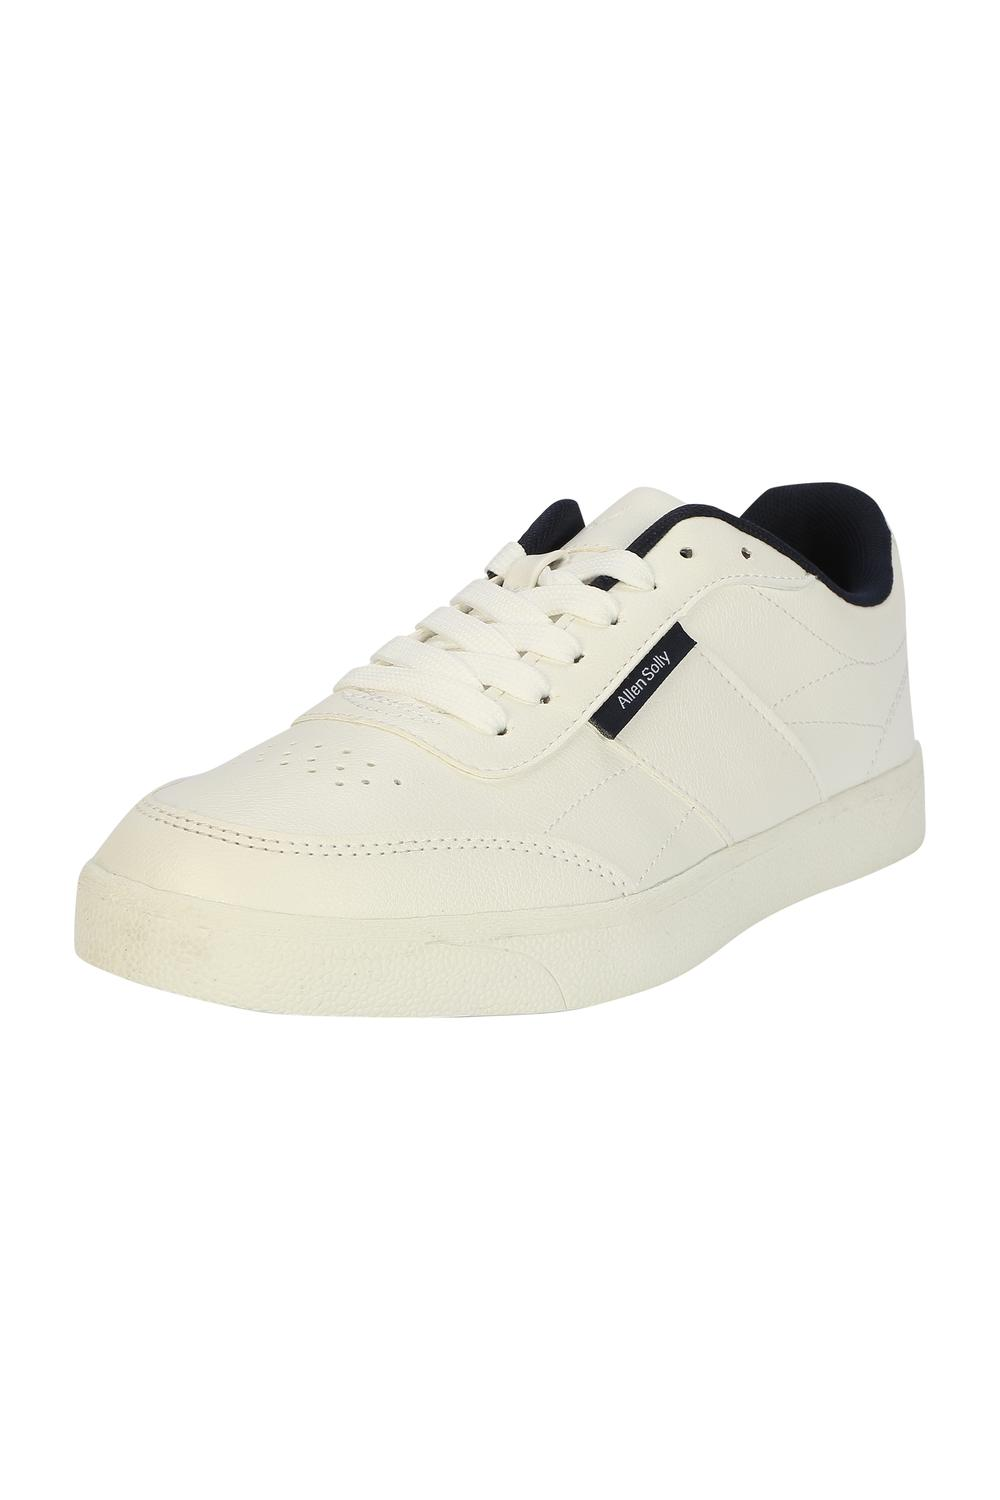 Allen Solly White Casual Shoes